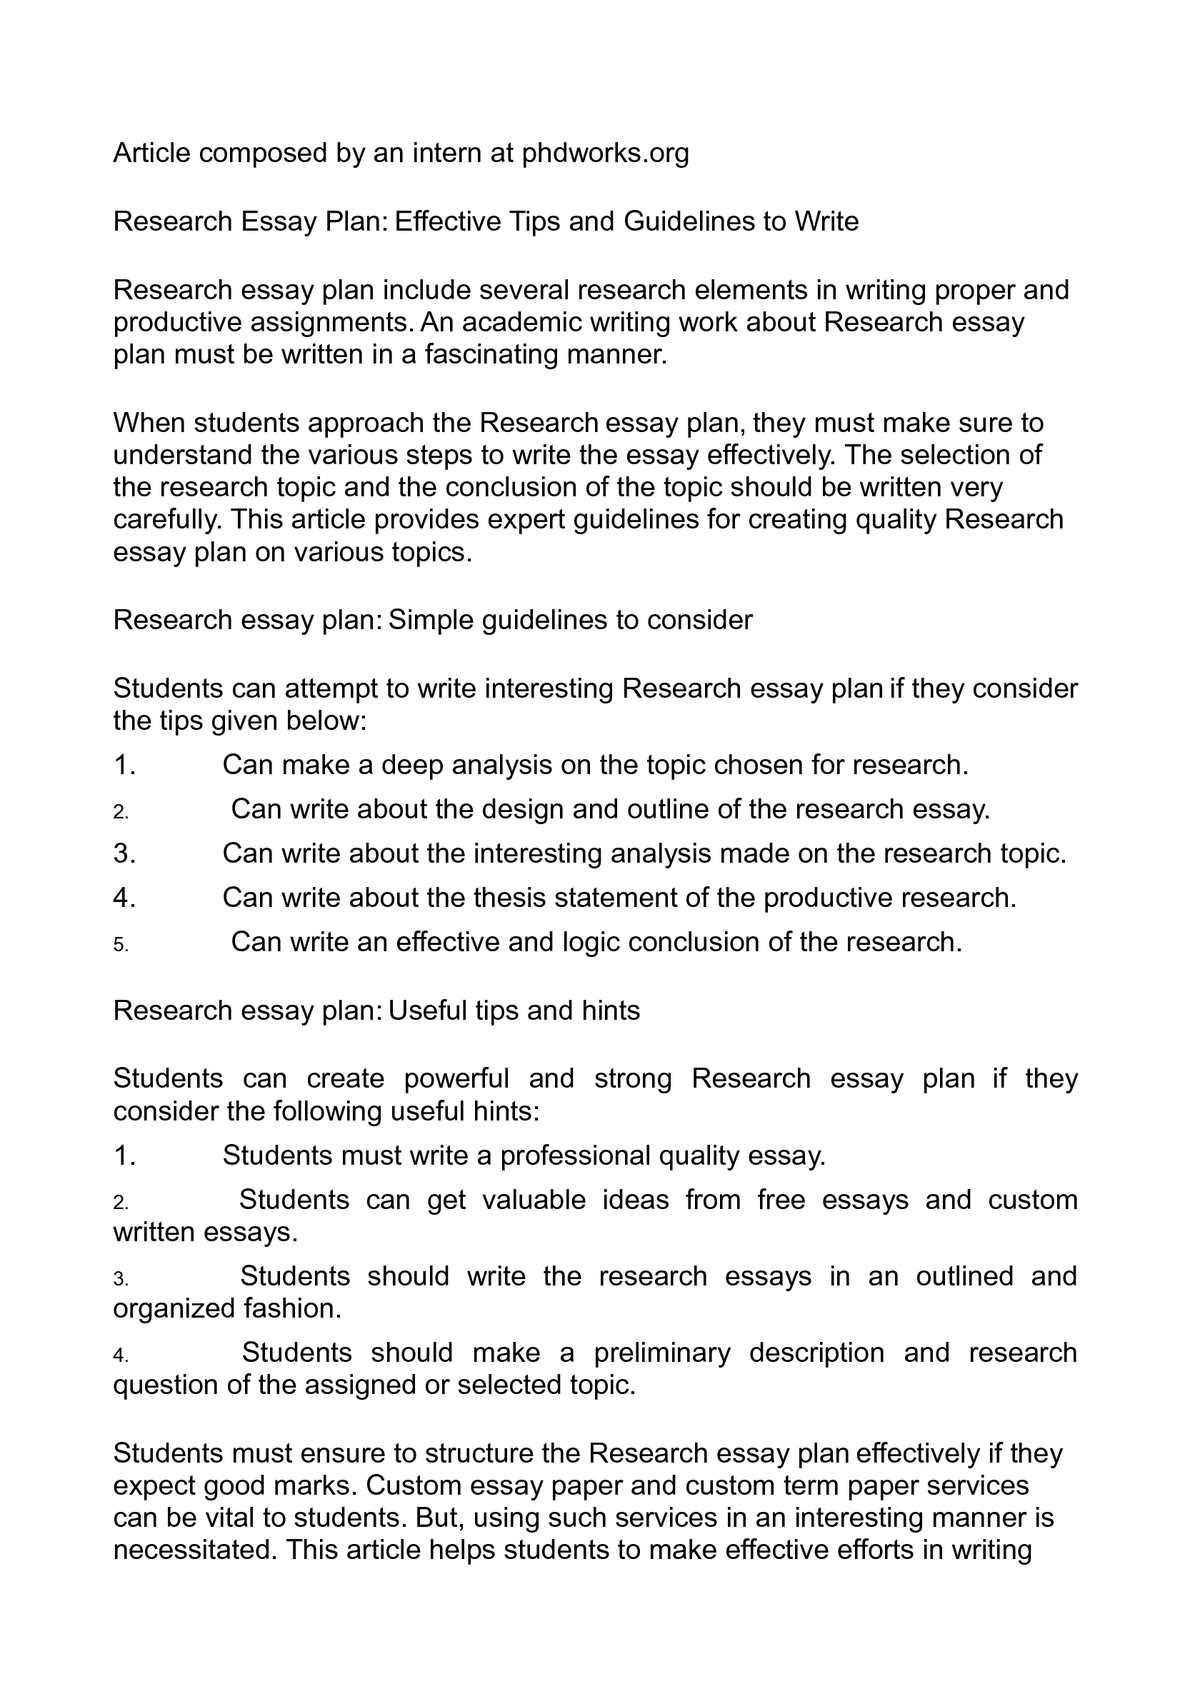 018 Interesting Topics To Write Research Essay On P1 Formidable A Easy Papers Good Psychology Paper Full